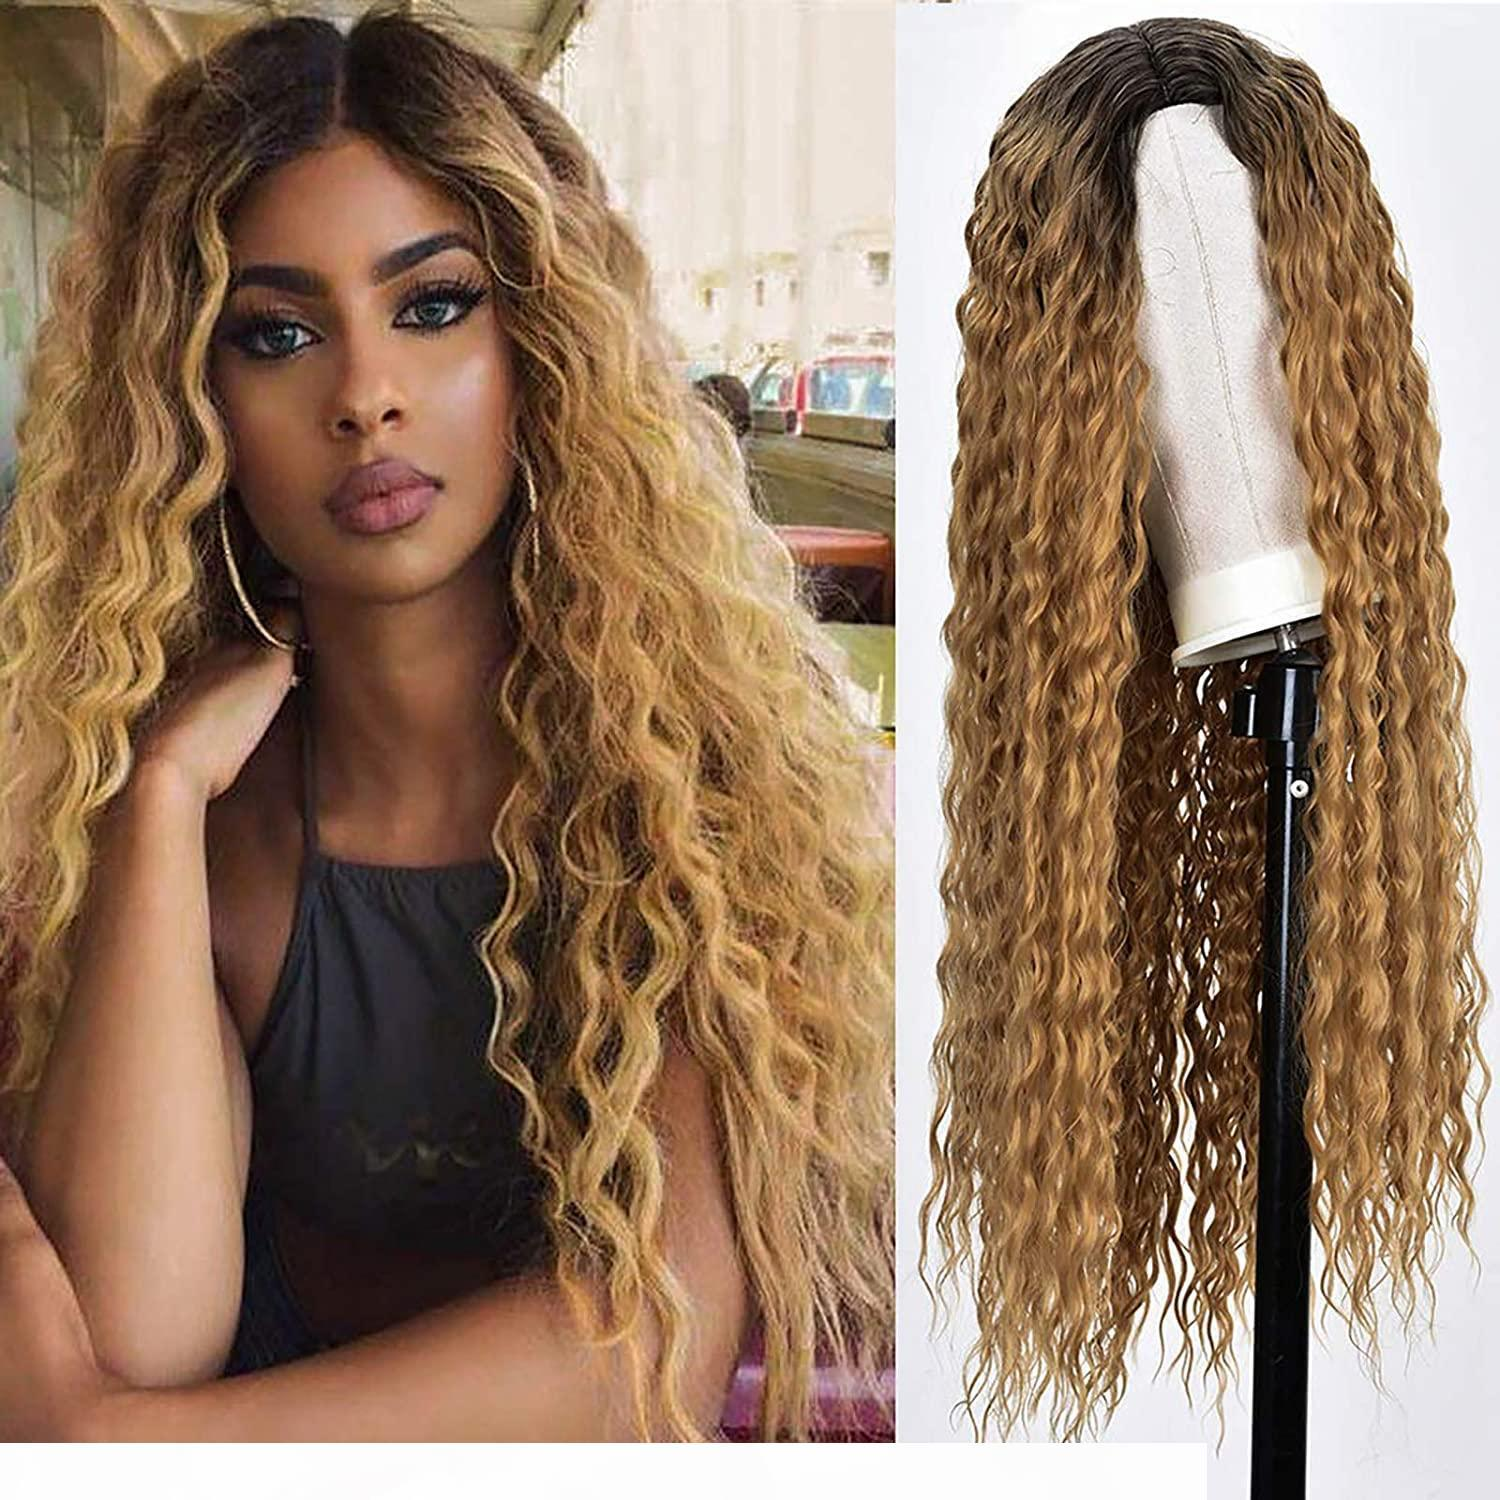 Ombre Might WIG Perruque Brown Honey Blonde Couleur Curly HD Entier Dentelle Avant Human Hair Perruques Centrales Straight 360 Dentelle Perruque Frontale Remy